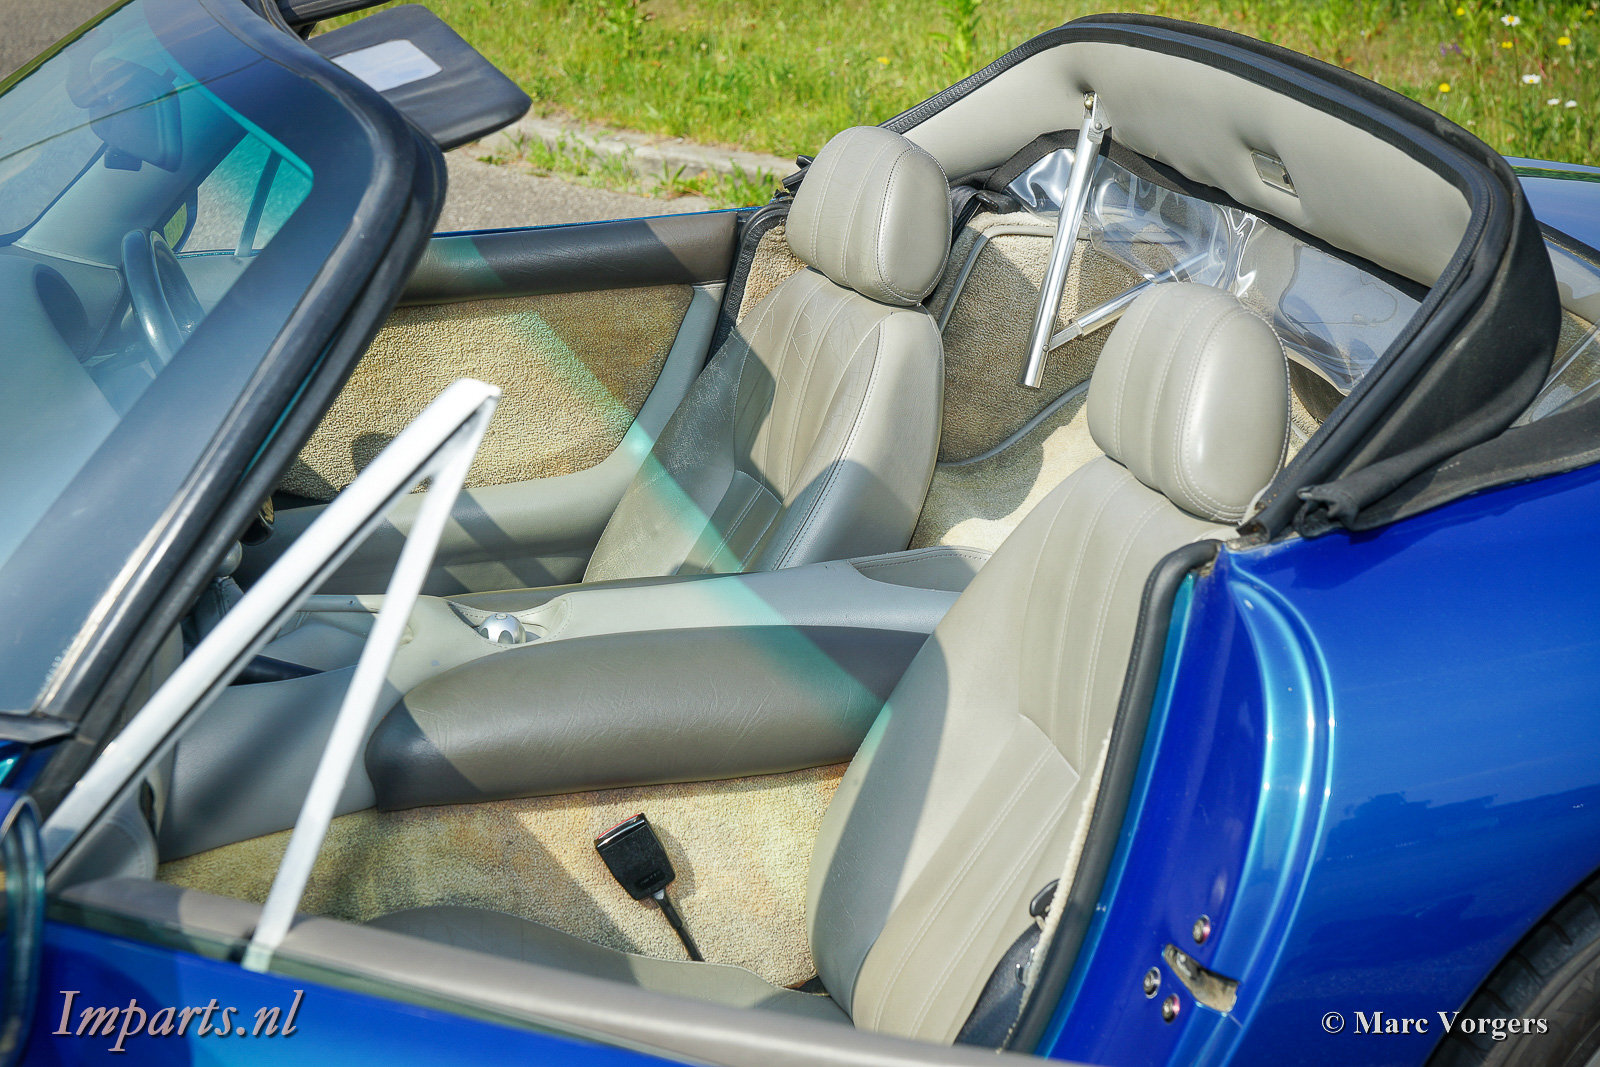 1997 Excellent TVR Chimaera 500 with only 48.000 miles For Sale (picture 3 of 6)